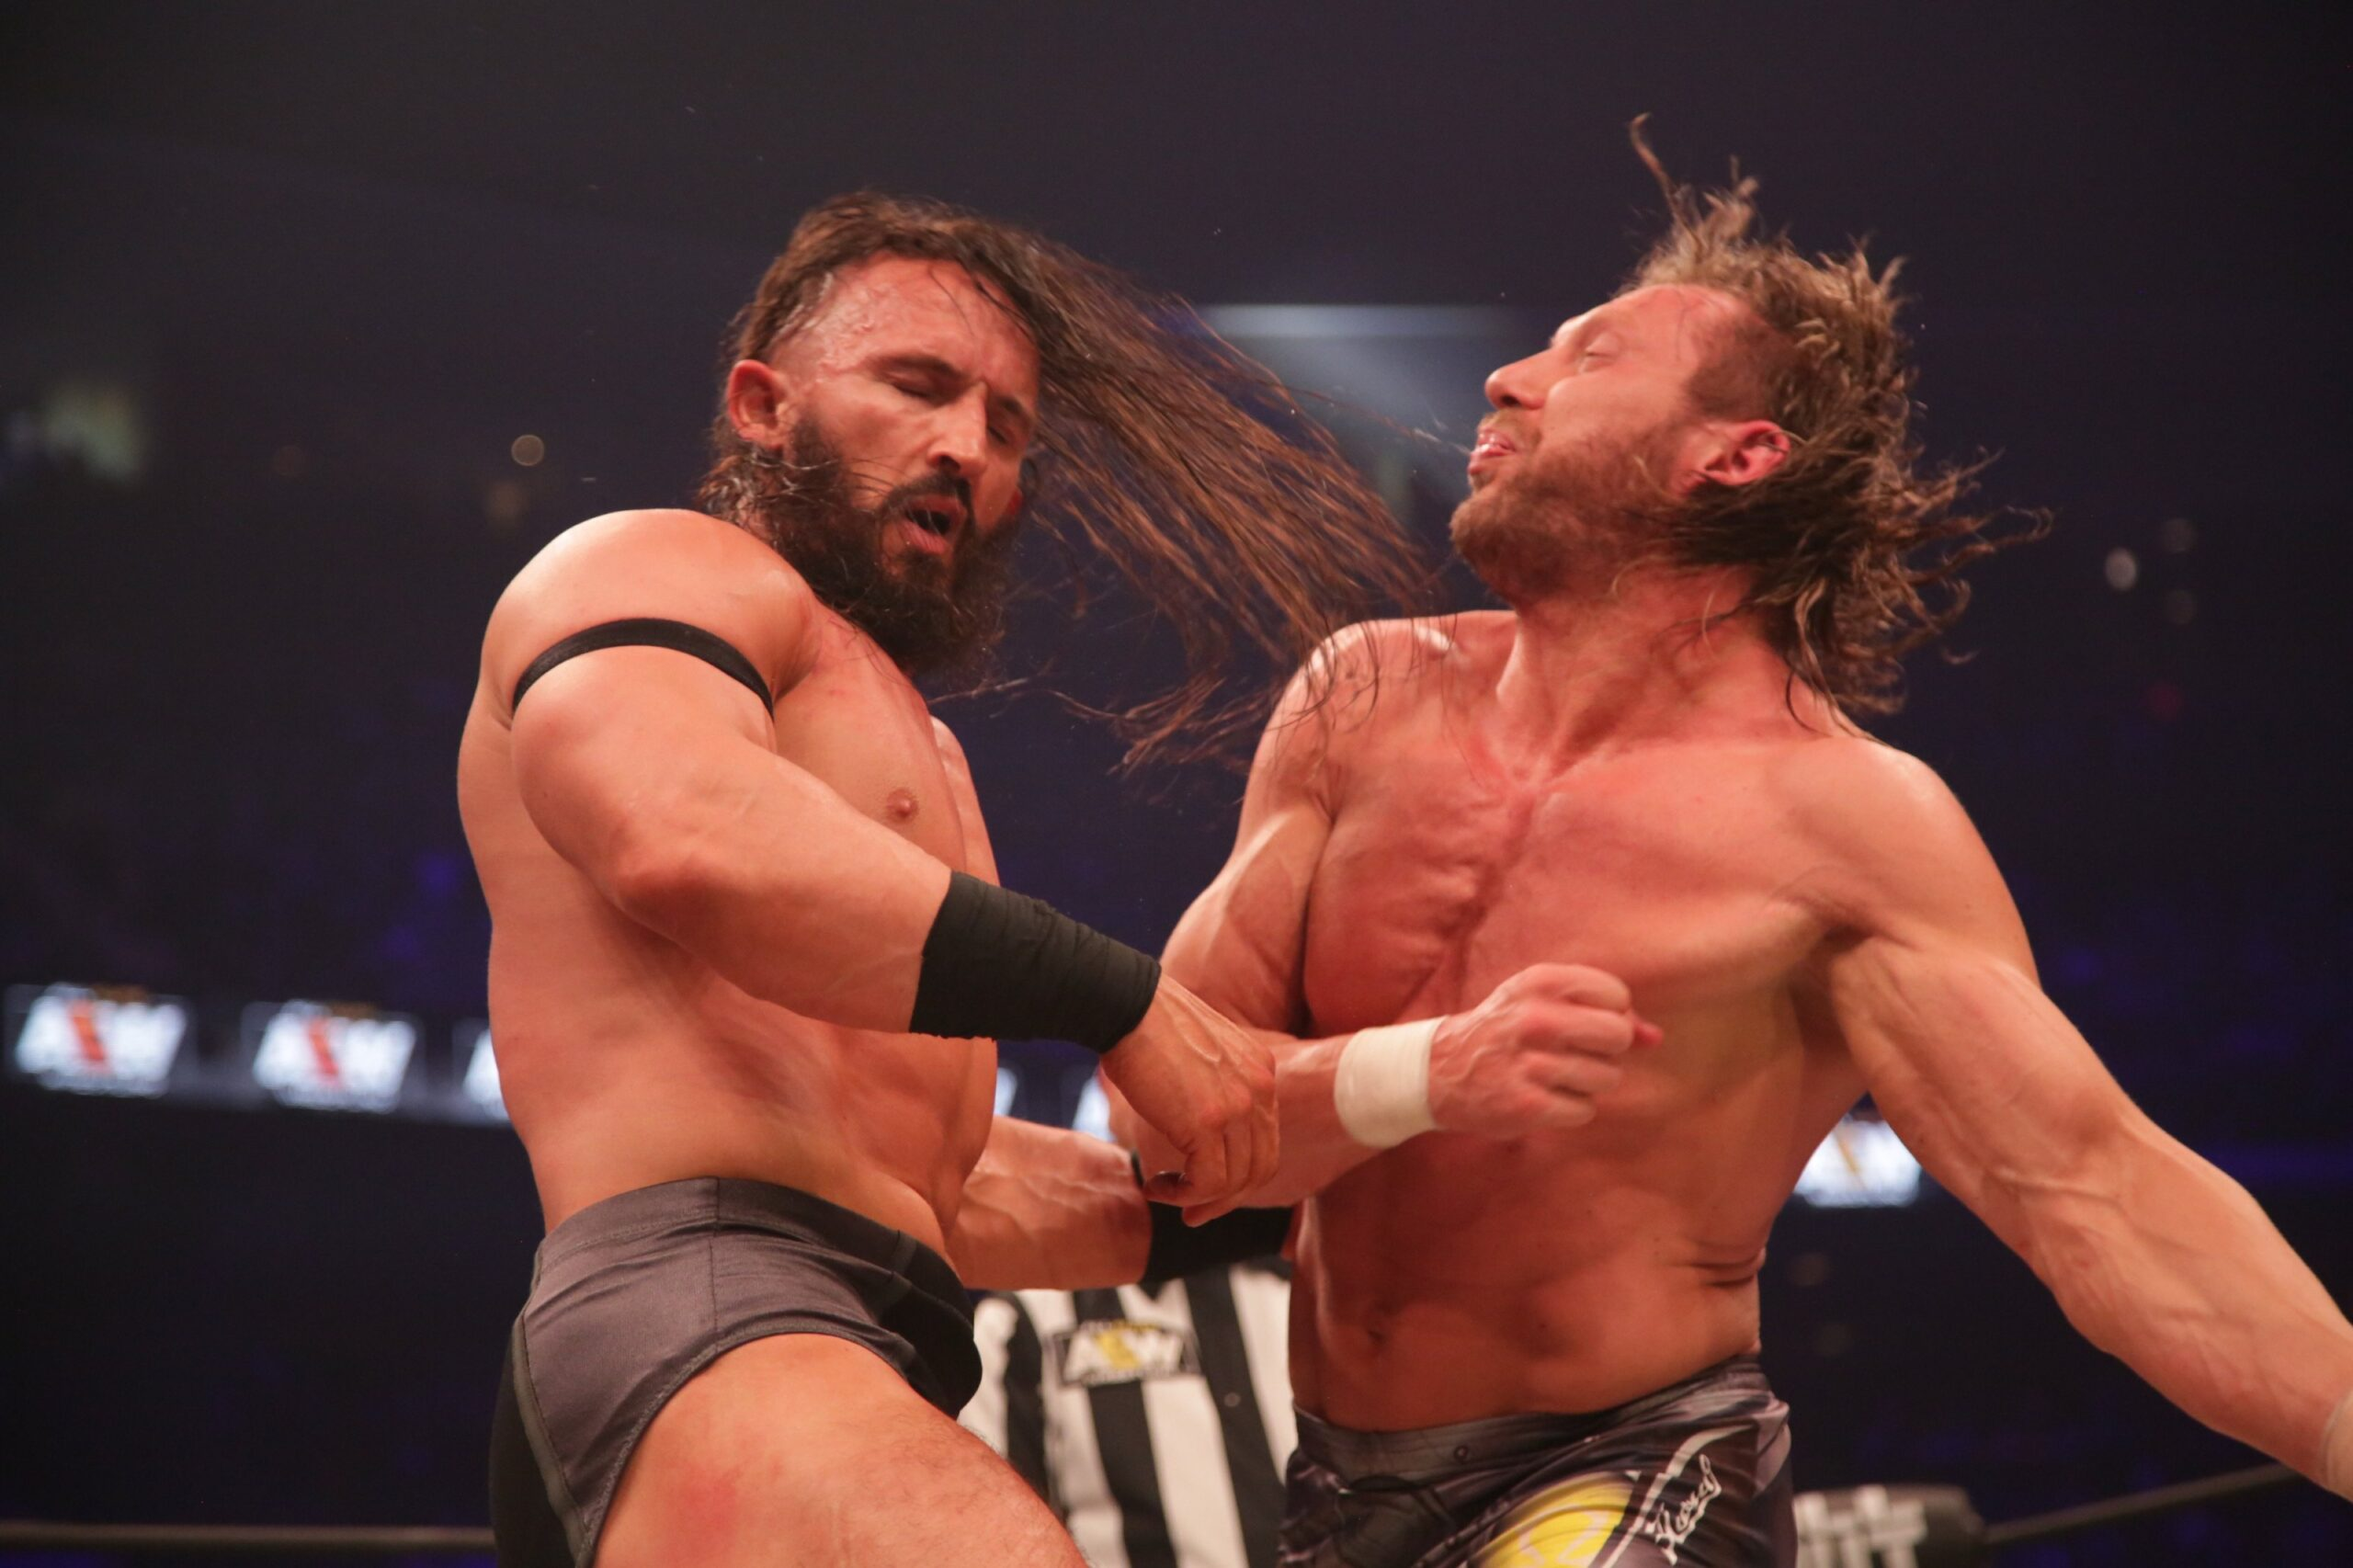 Best Wrestling Pay-Per-Views Of 2019